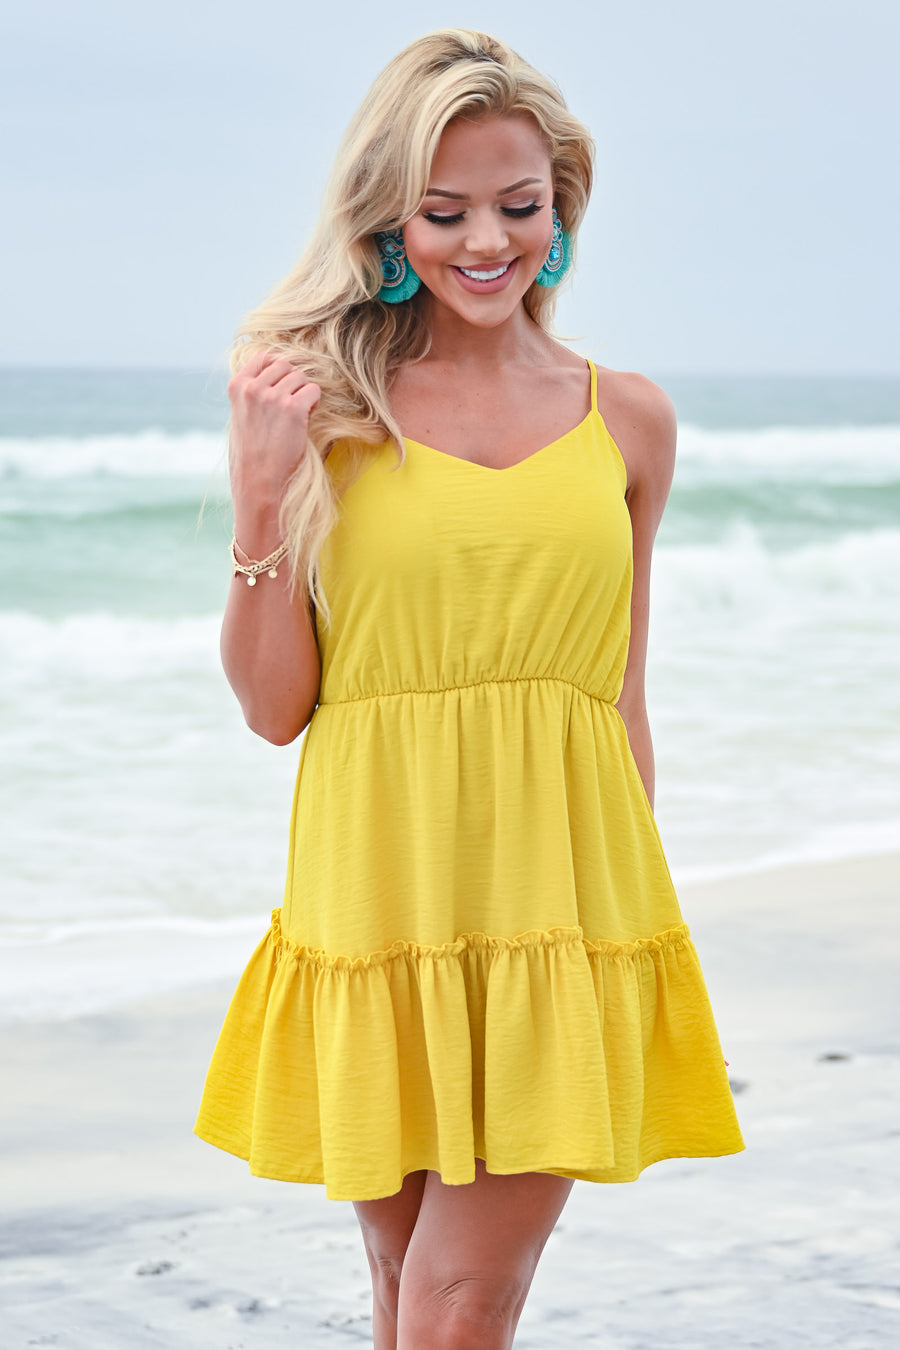 EVERLY Back To The Beach Dress - Sunshine yellow v-neckline adjustable spaghetti straps ruffle trim midi dress closet candy side